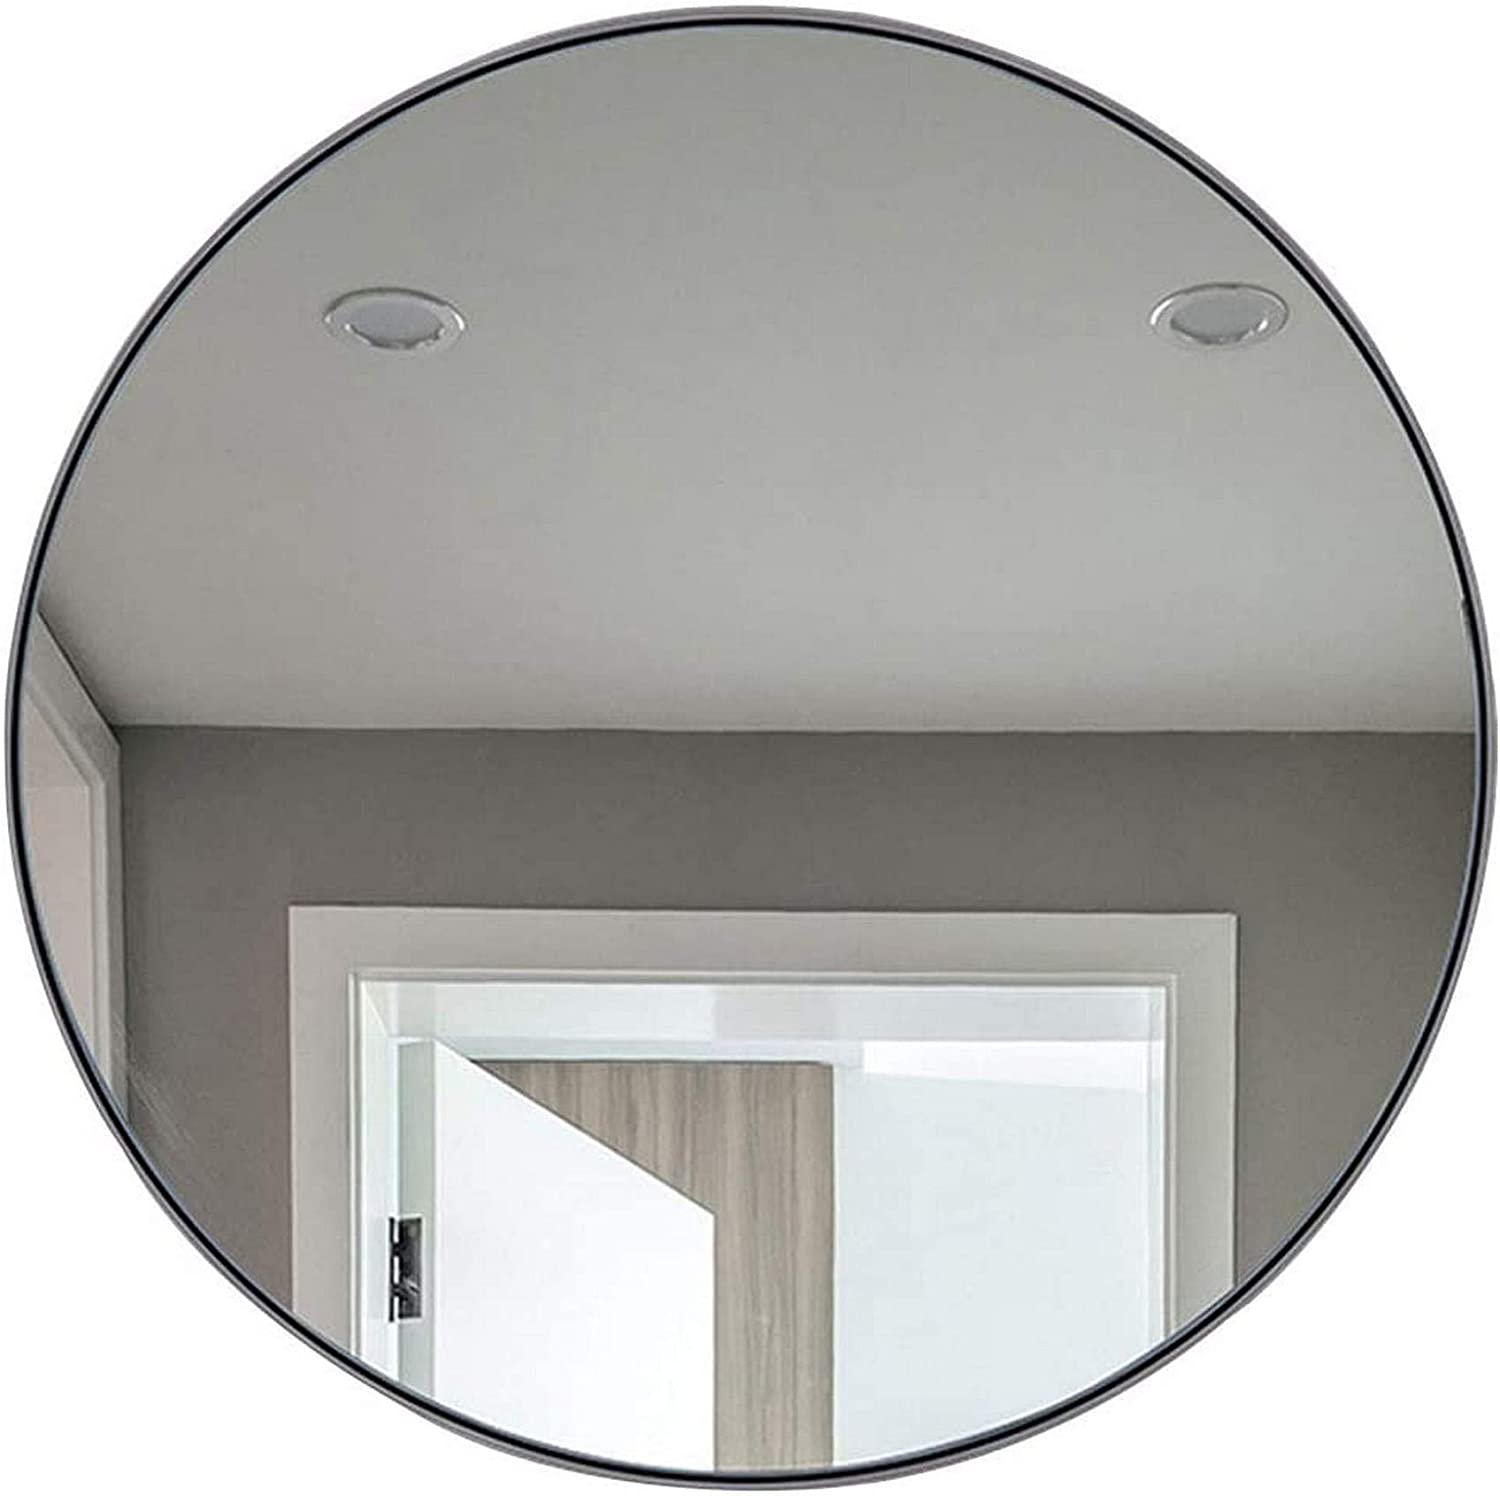 NSYNSY Mirror Stainless Steel Round Hub Wall Mirror Contemporary Brushed Metal Wall Mirror 19.7-31.5 Inch for Entryways, Washrooms, Living Rooms and More,Home Decoration Mirror